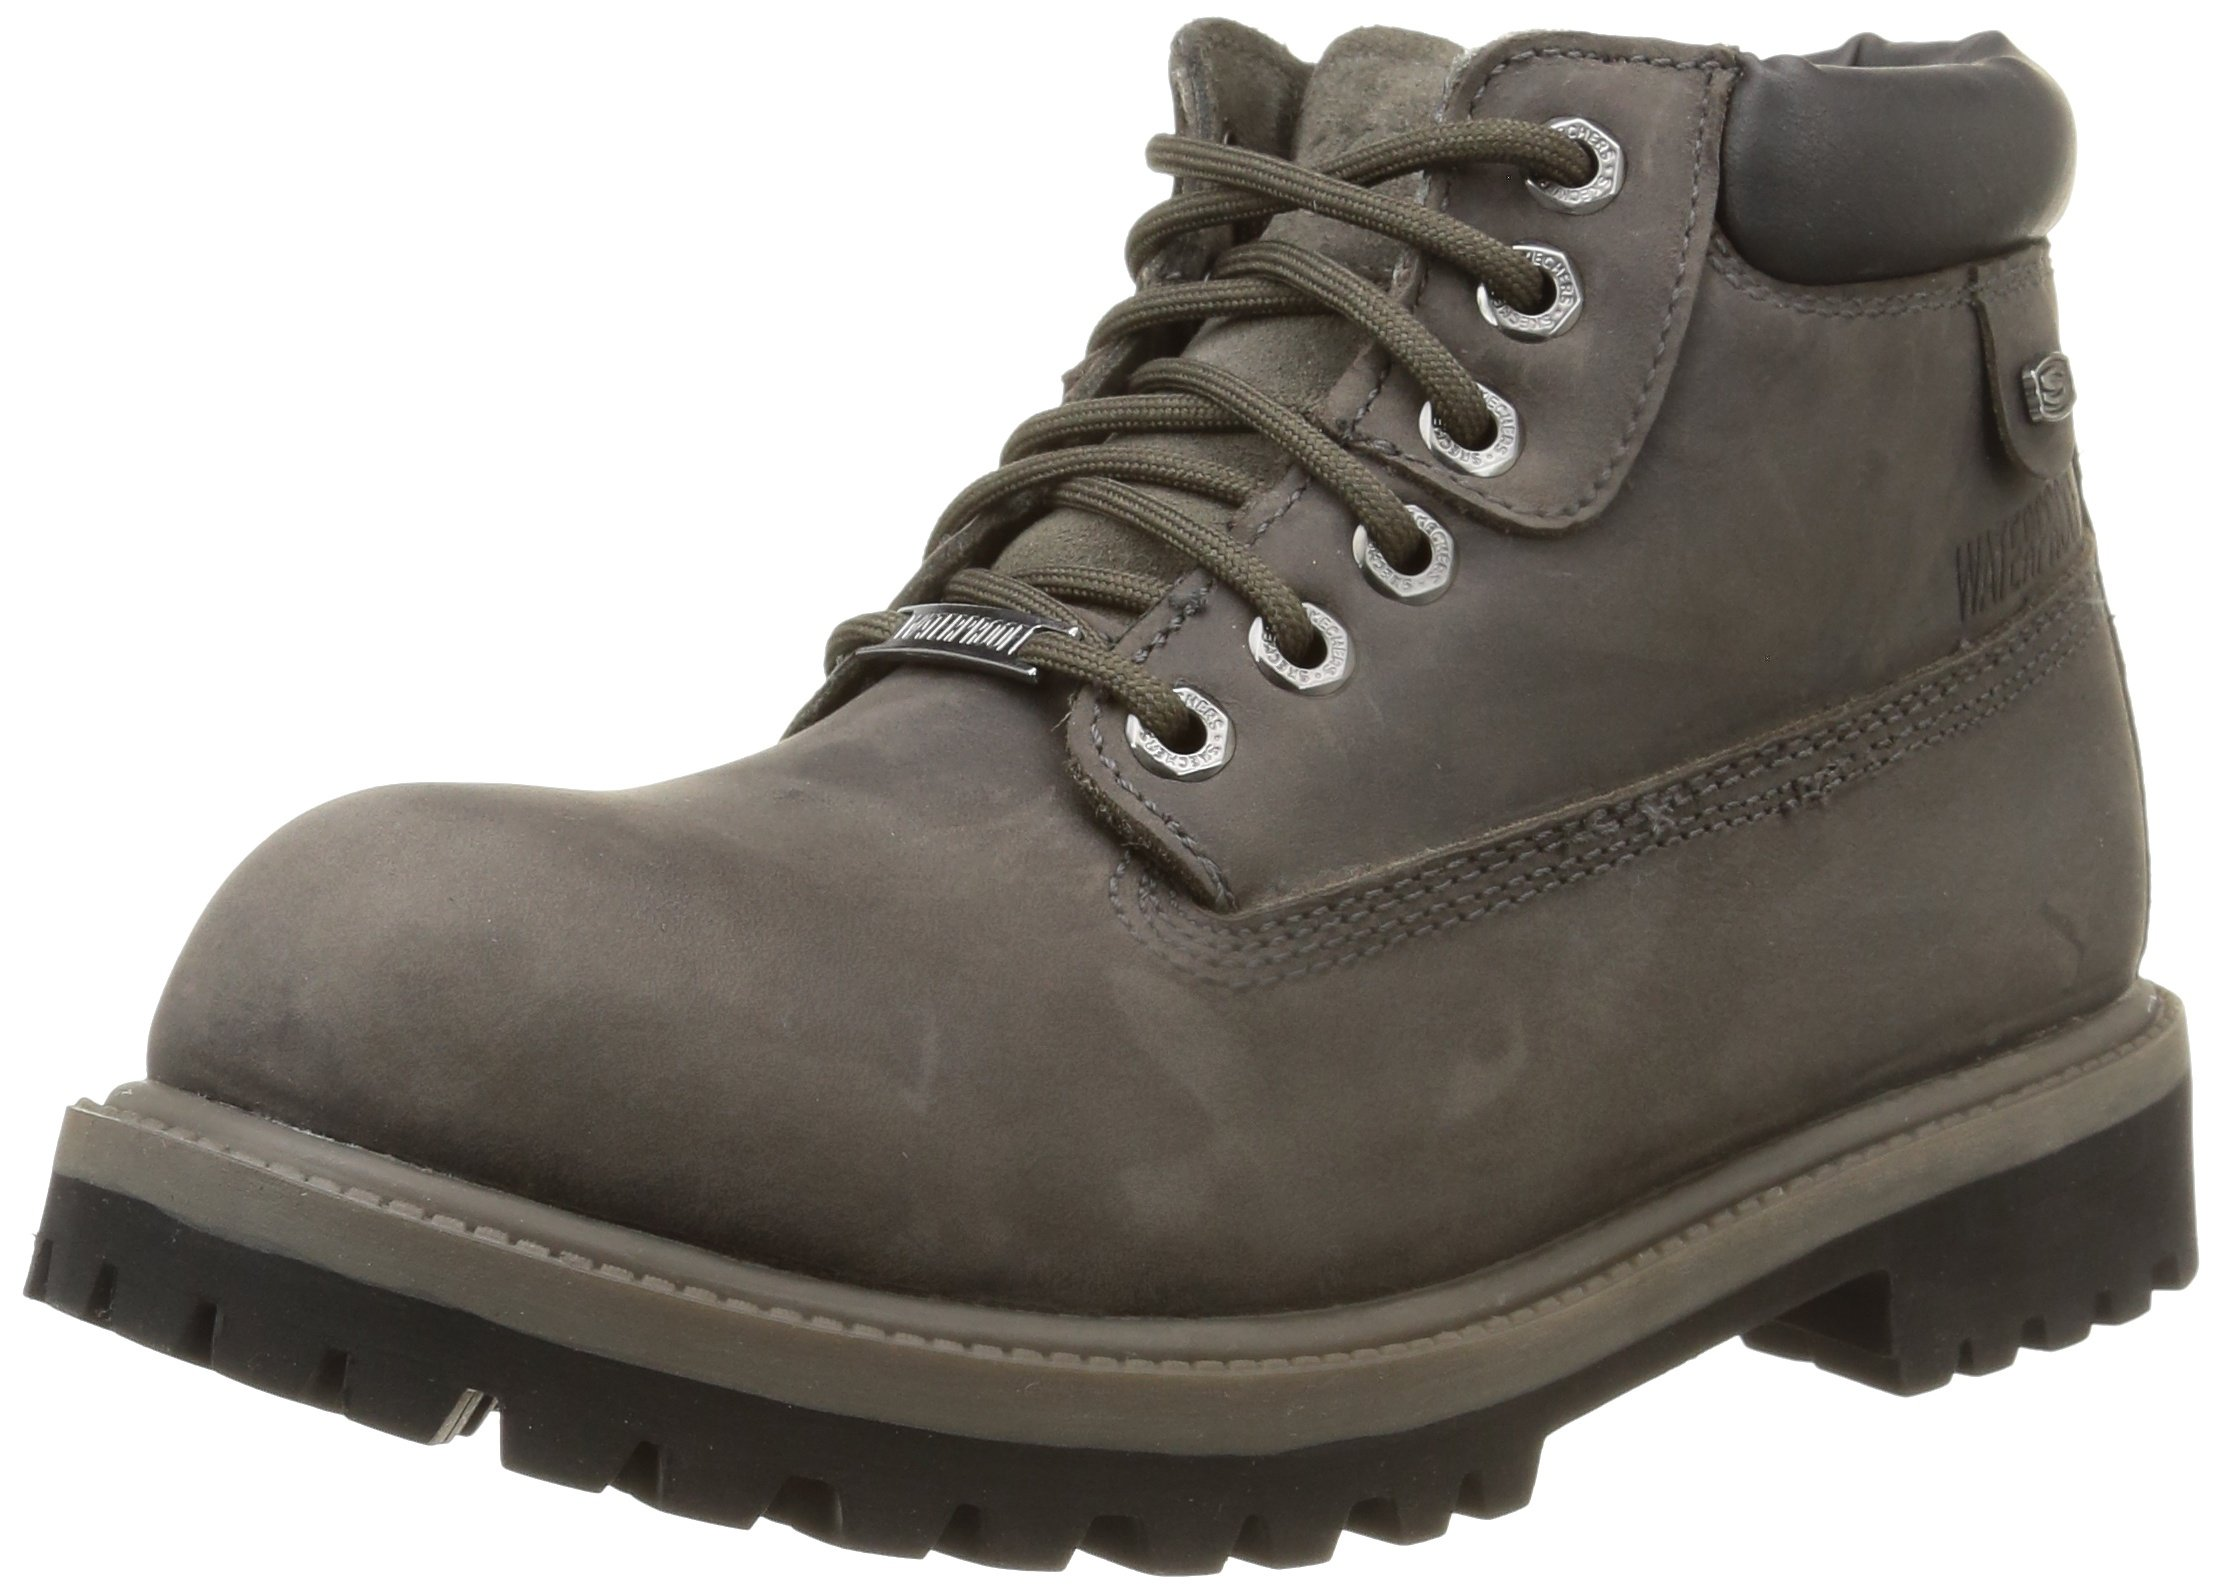 Skechers USA Men's Verdict Men's Boot,Charcoal,8 M US by Skechers